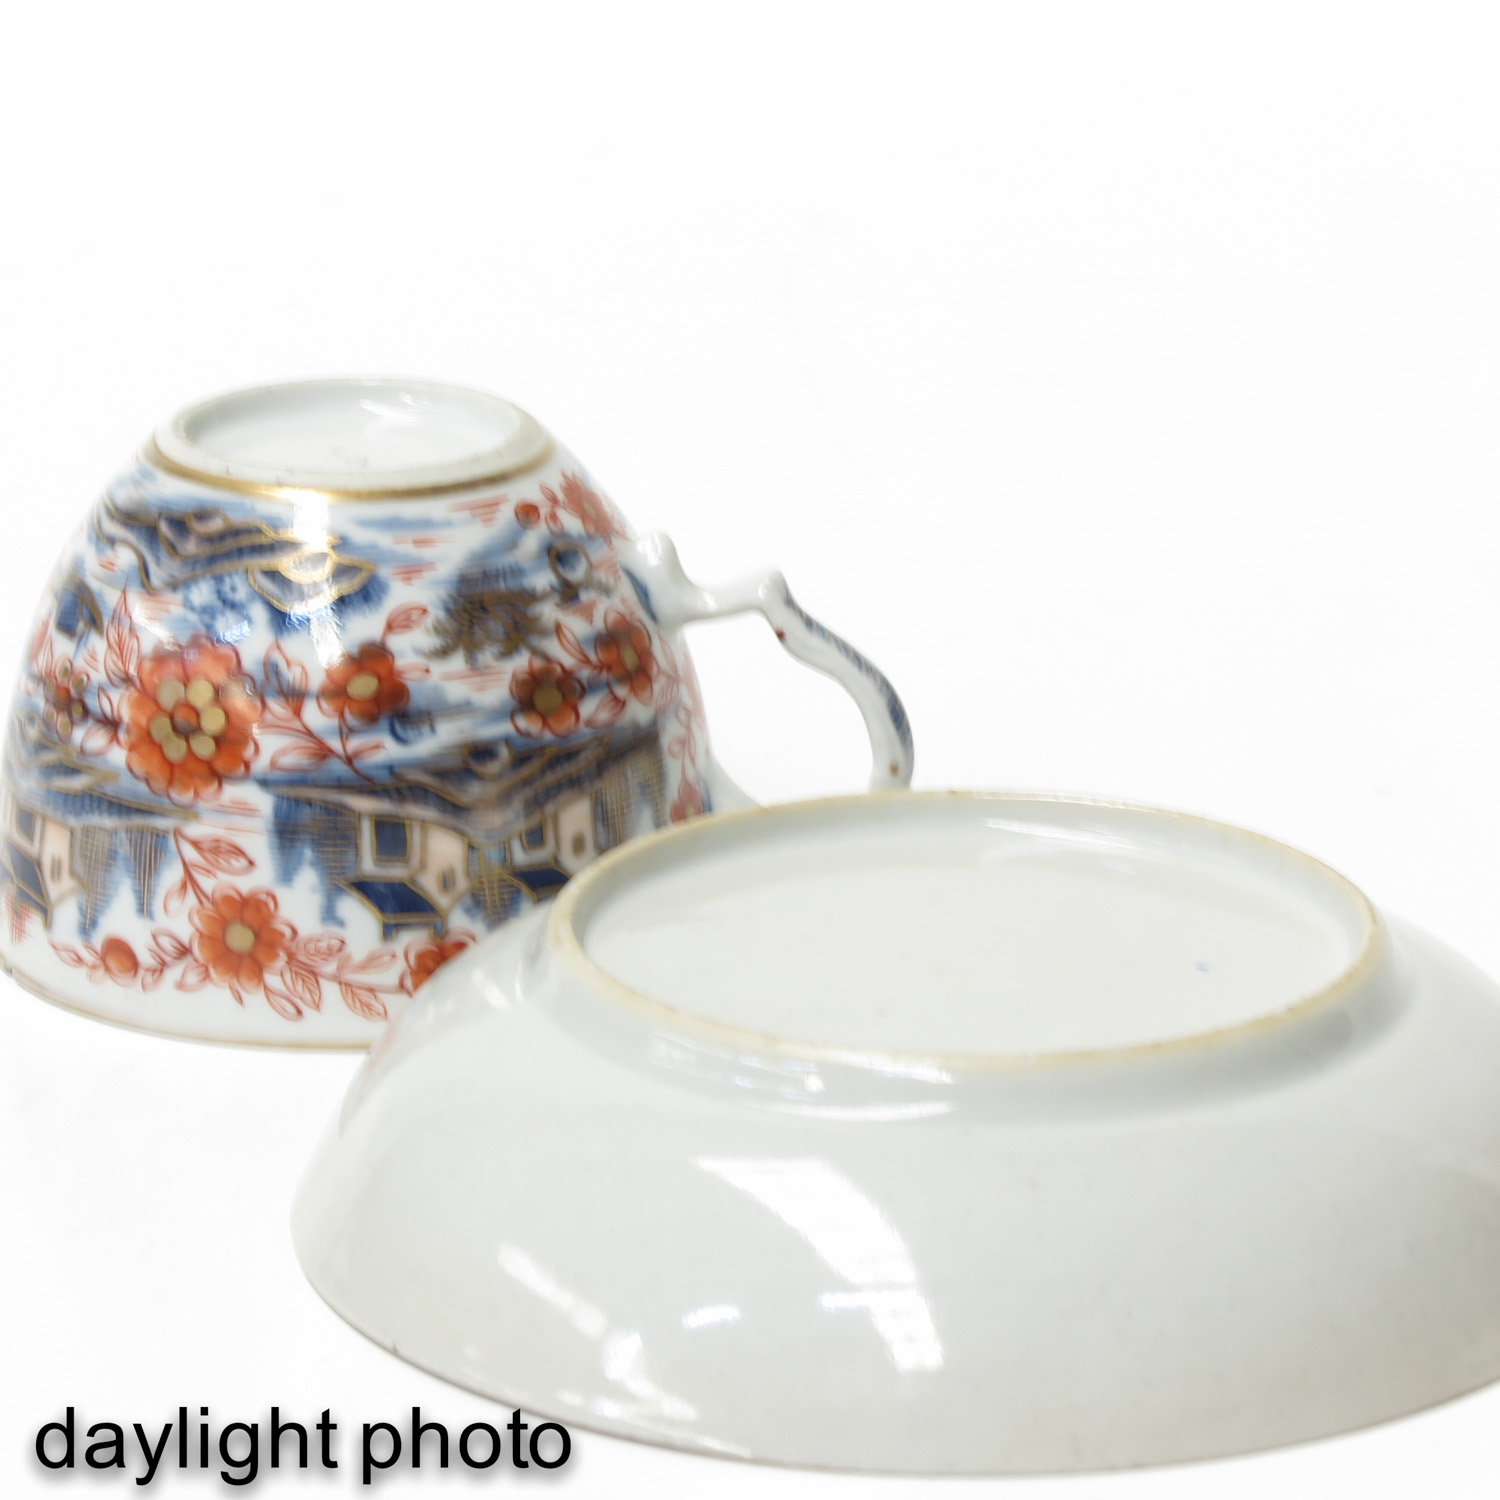 4 Imari Cups and Saucers - Image 10 of 10